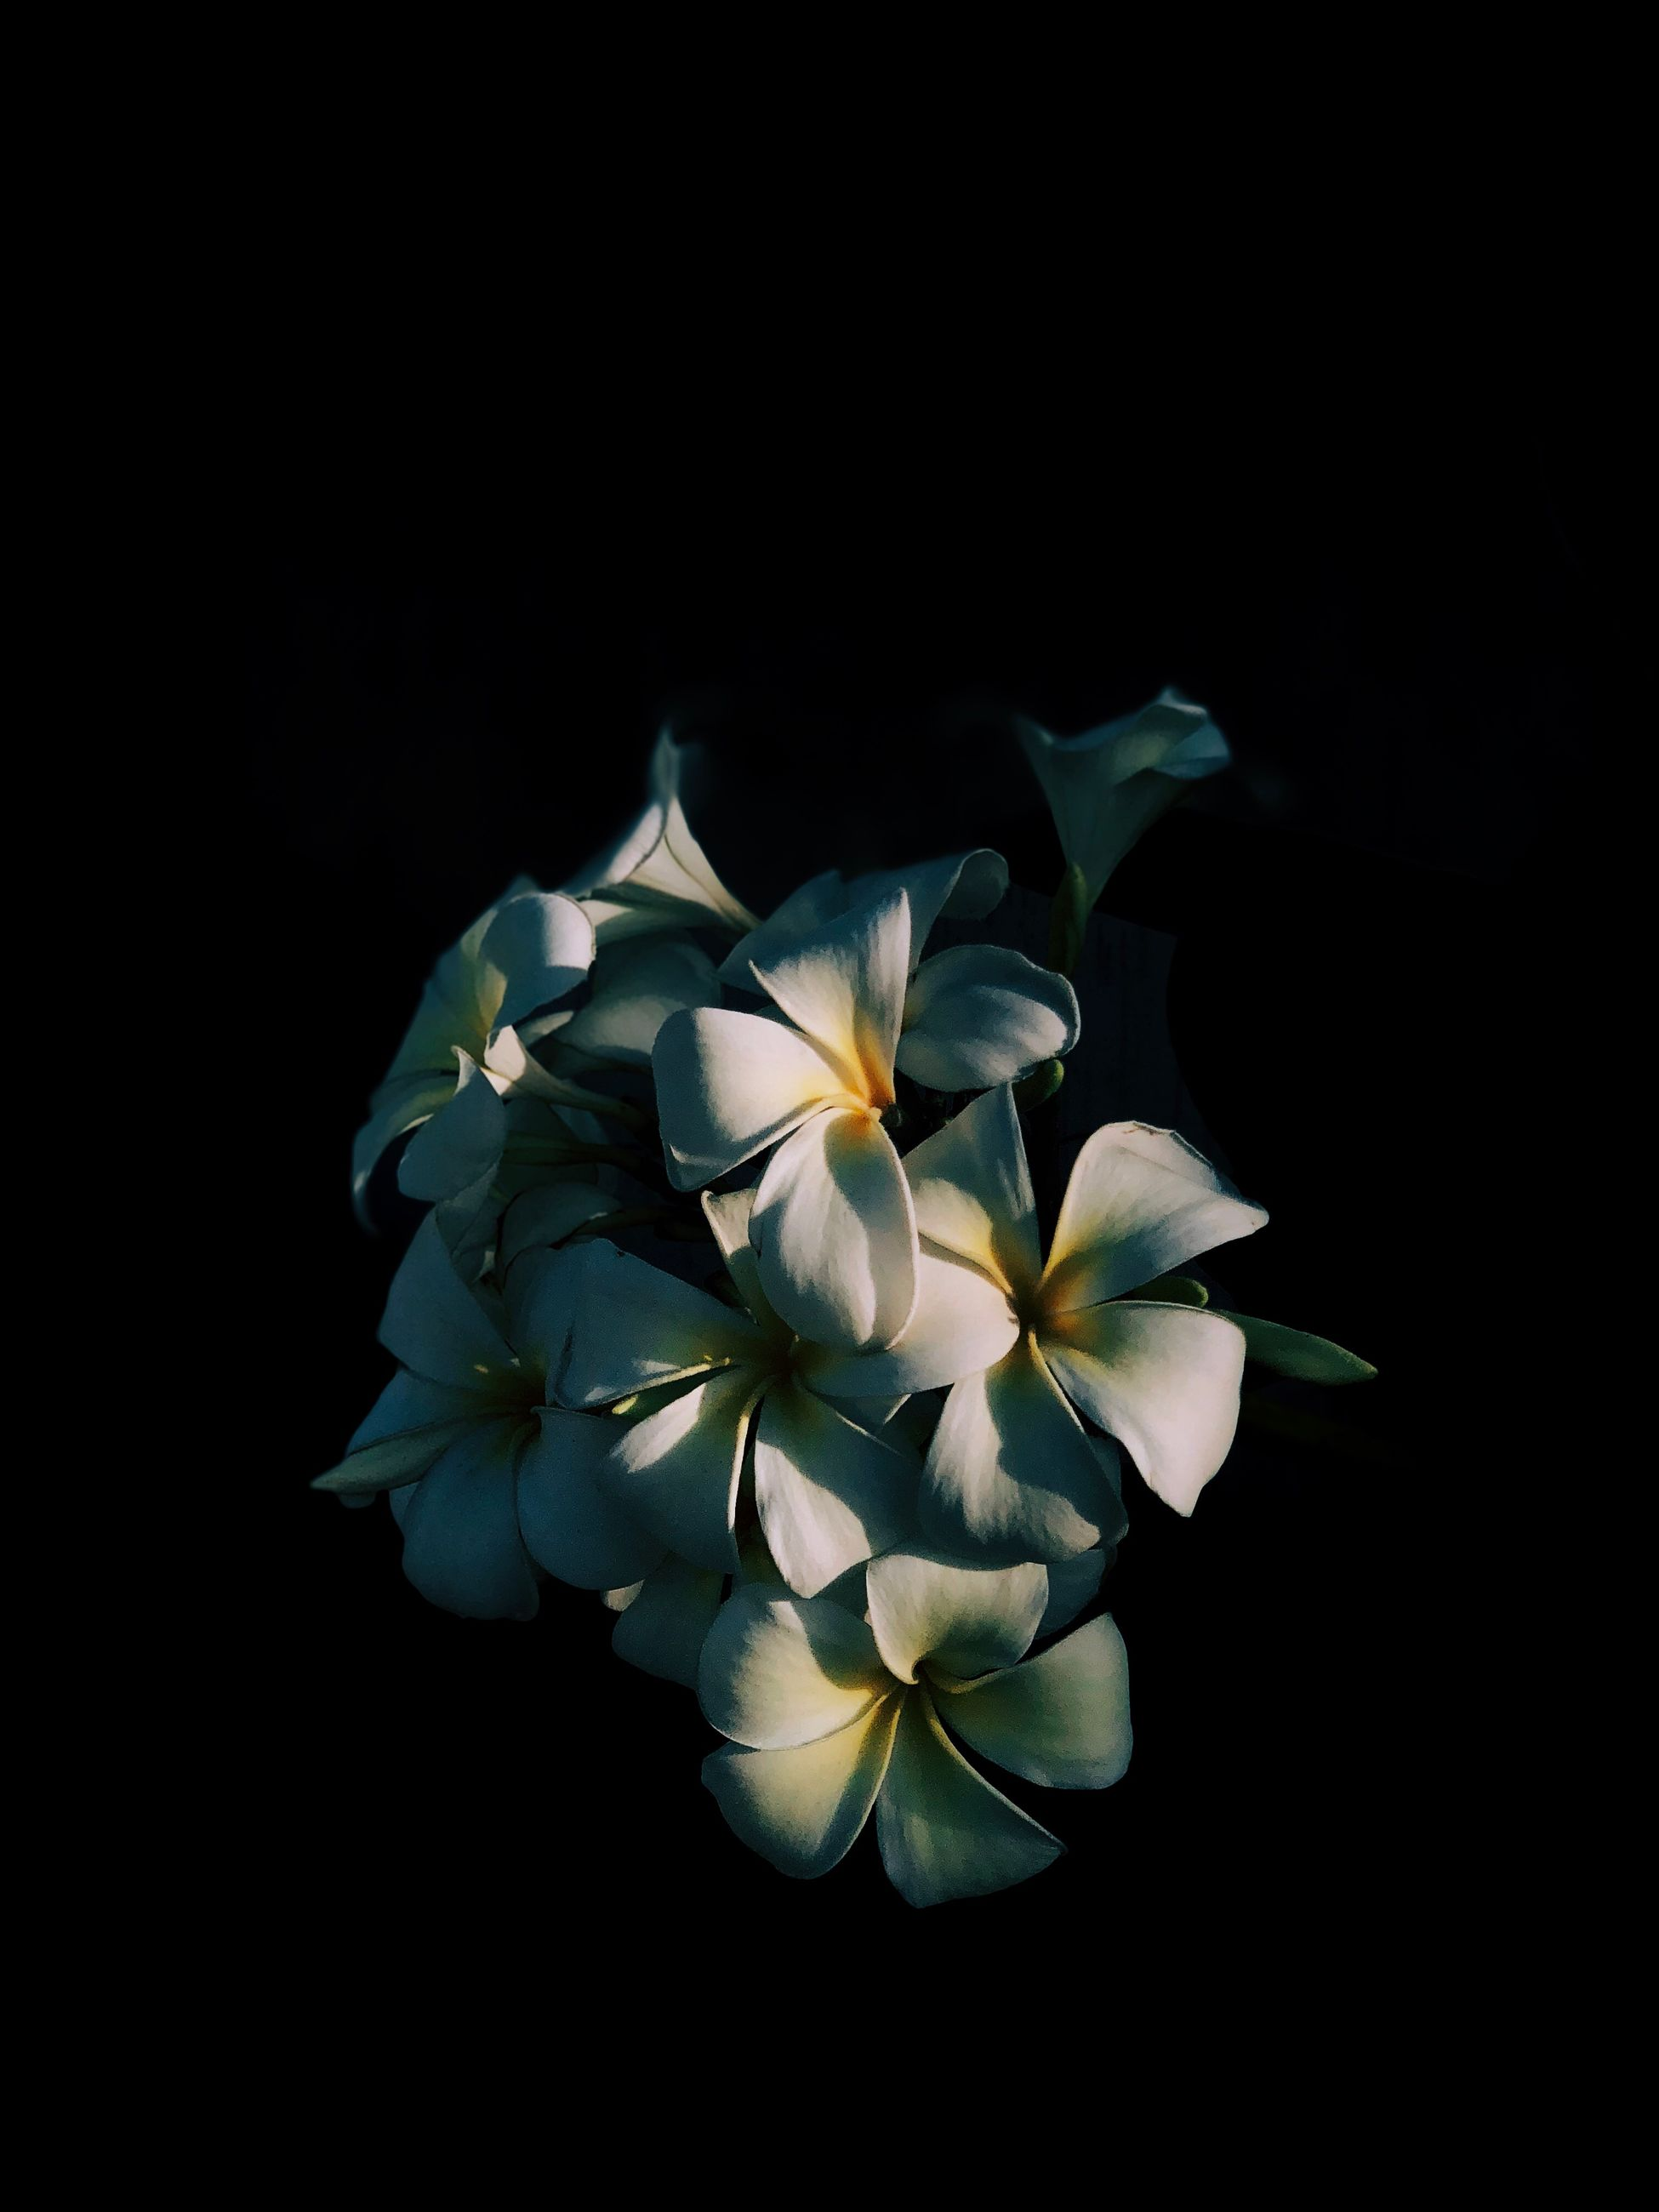 flower, flowering plant, petal, vulnerability, fragility, studio shot, freshness, black background, beauty in nature, flower head, plant, close-up, inflorescence, indoors, nature, no people, white color, copy space, growth, night